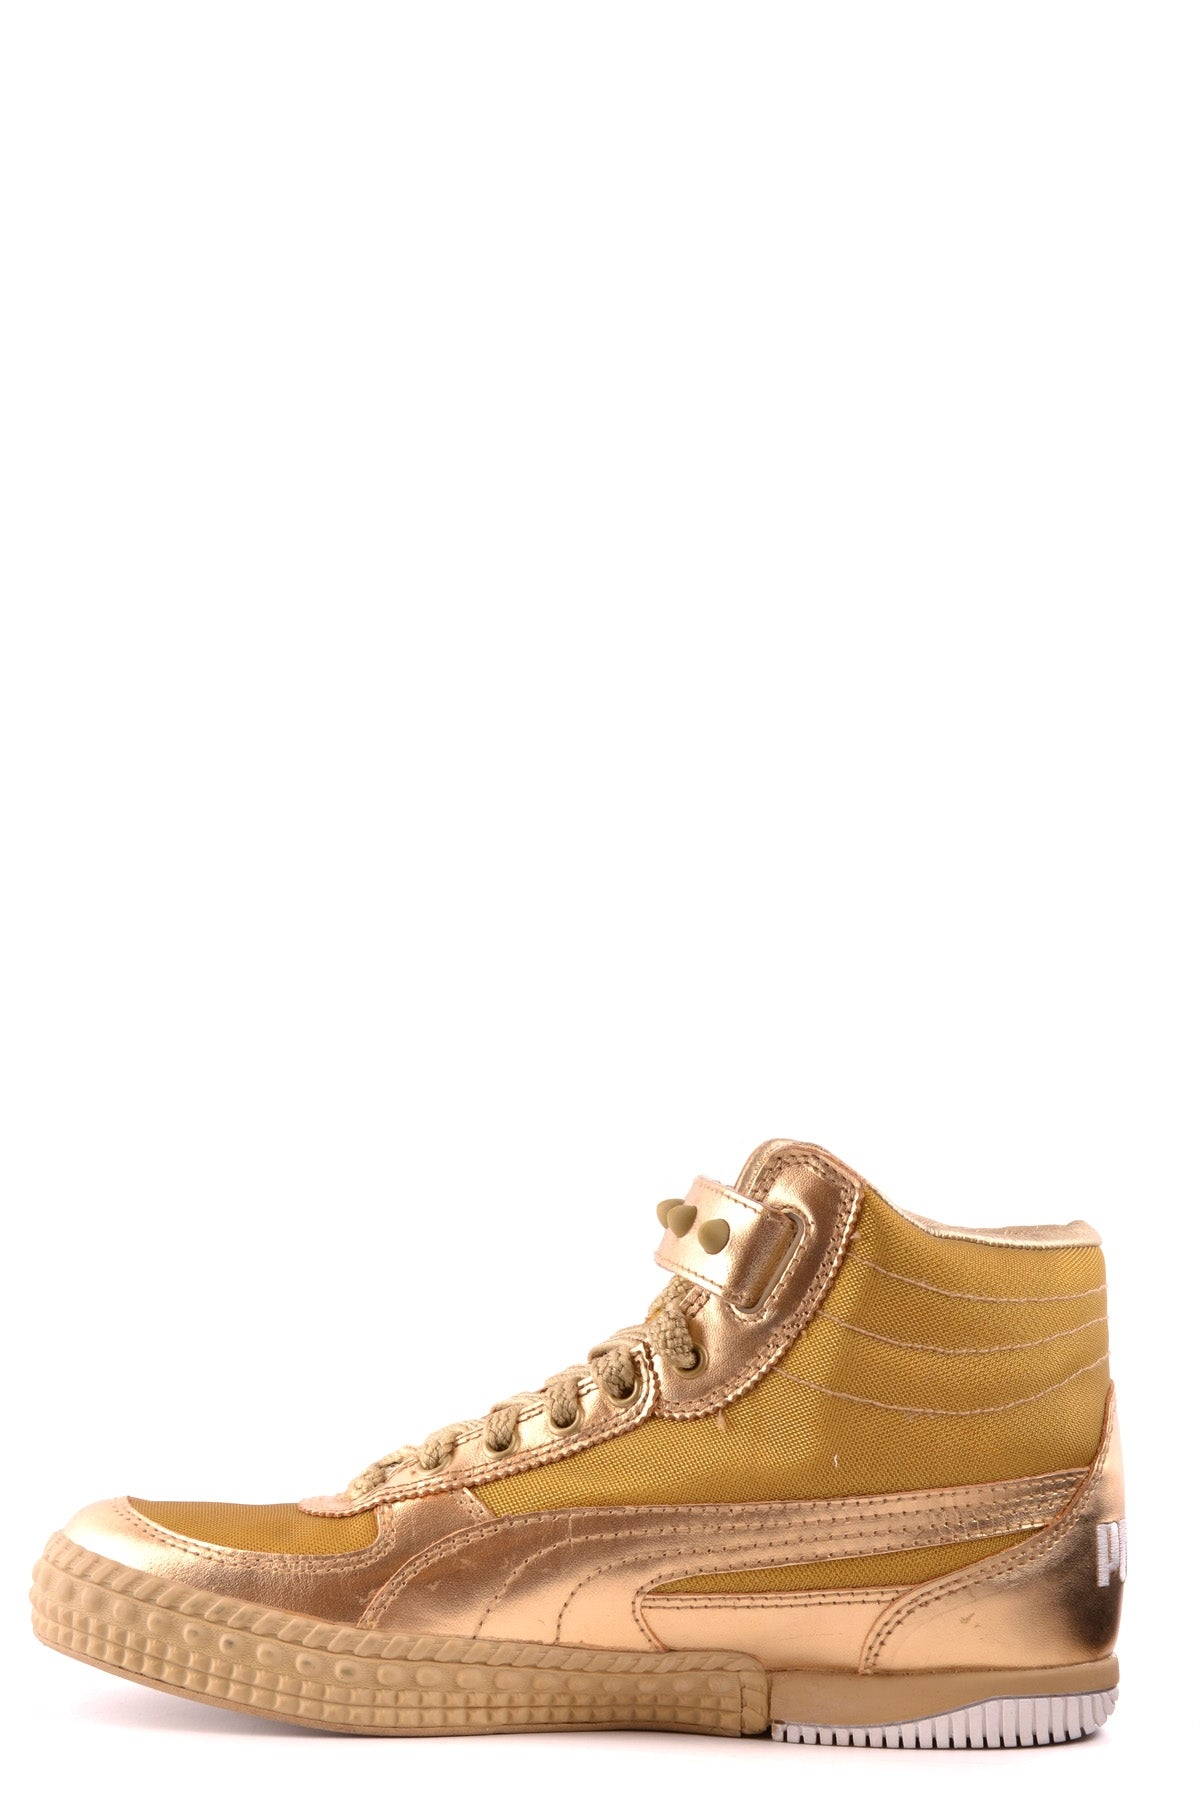 Shoes Puma-High-top sneakers - Shoes-Product Details Type Of Accessory: ShoesTerms: New With LabelMain Color: GoldGender: ManYear: 2017Size: EuSeason: Fall / WinterComposition: Leather 50%, Tissue 50%-Keyomi-Sook